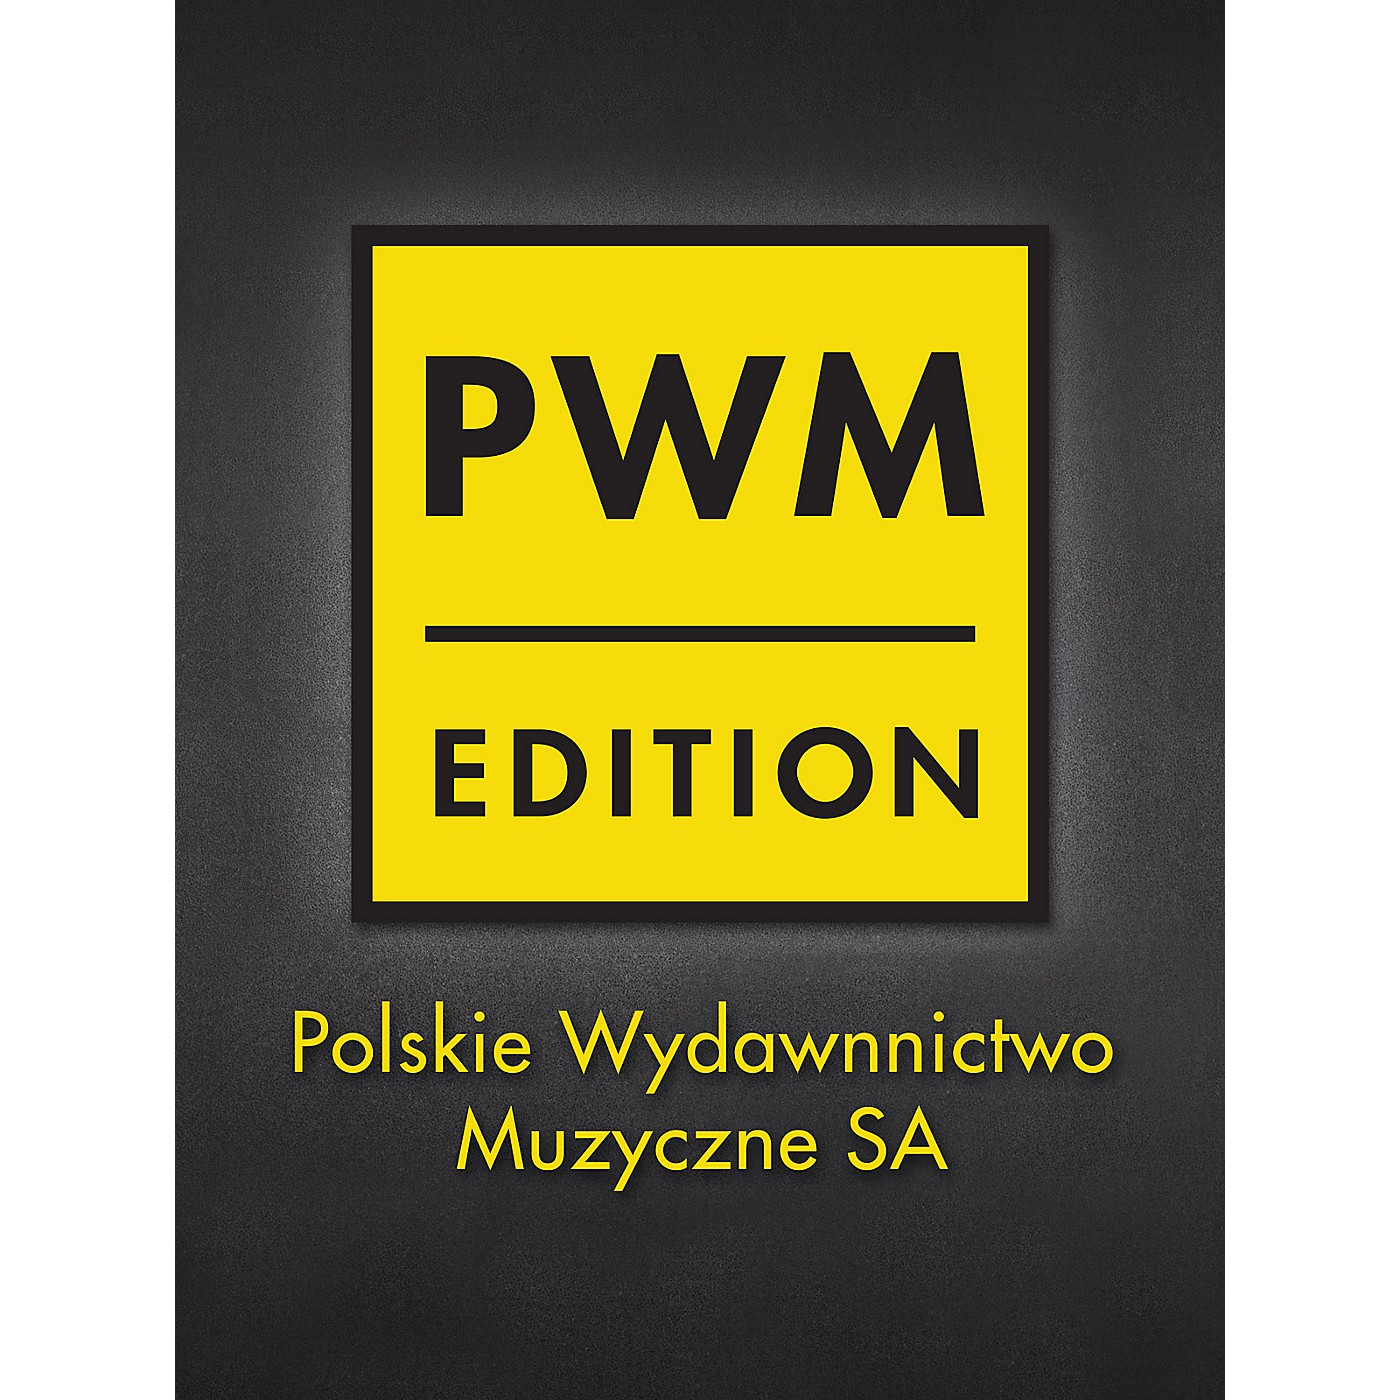 PWM Miniatures For Cello (double Bass) And Piano PWM Series thumbnail